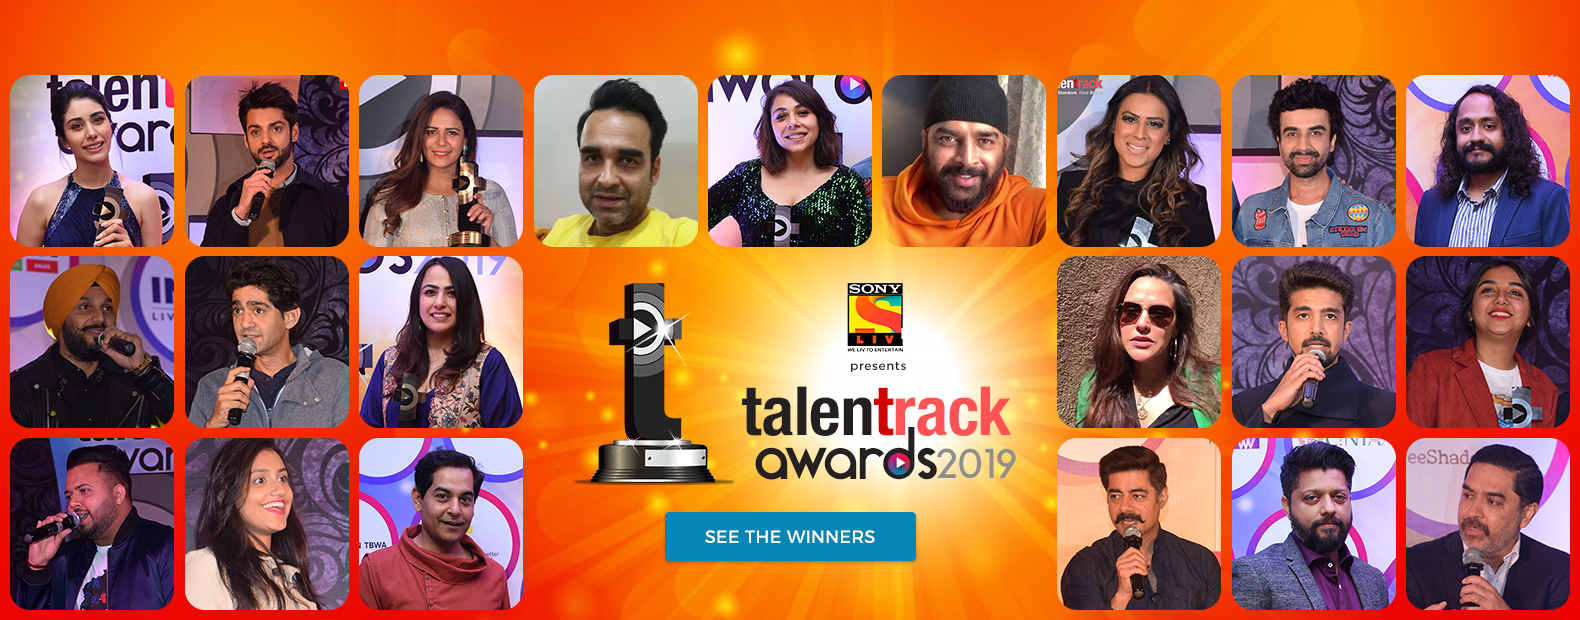 talentrack awards2019 8th February 2019, The Westin, Mumbai, BOOK YOUR SEAT